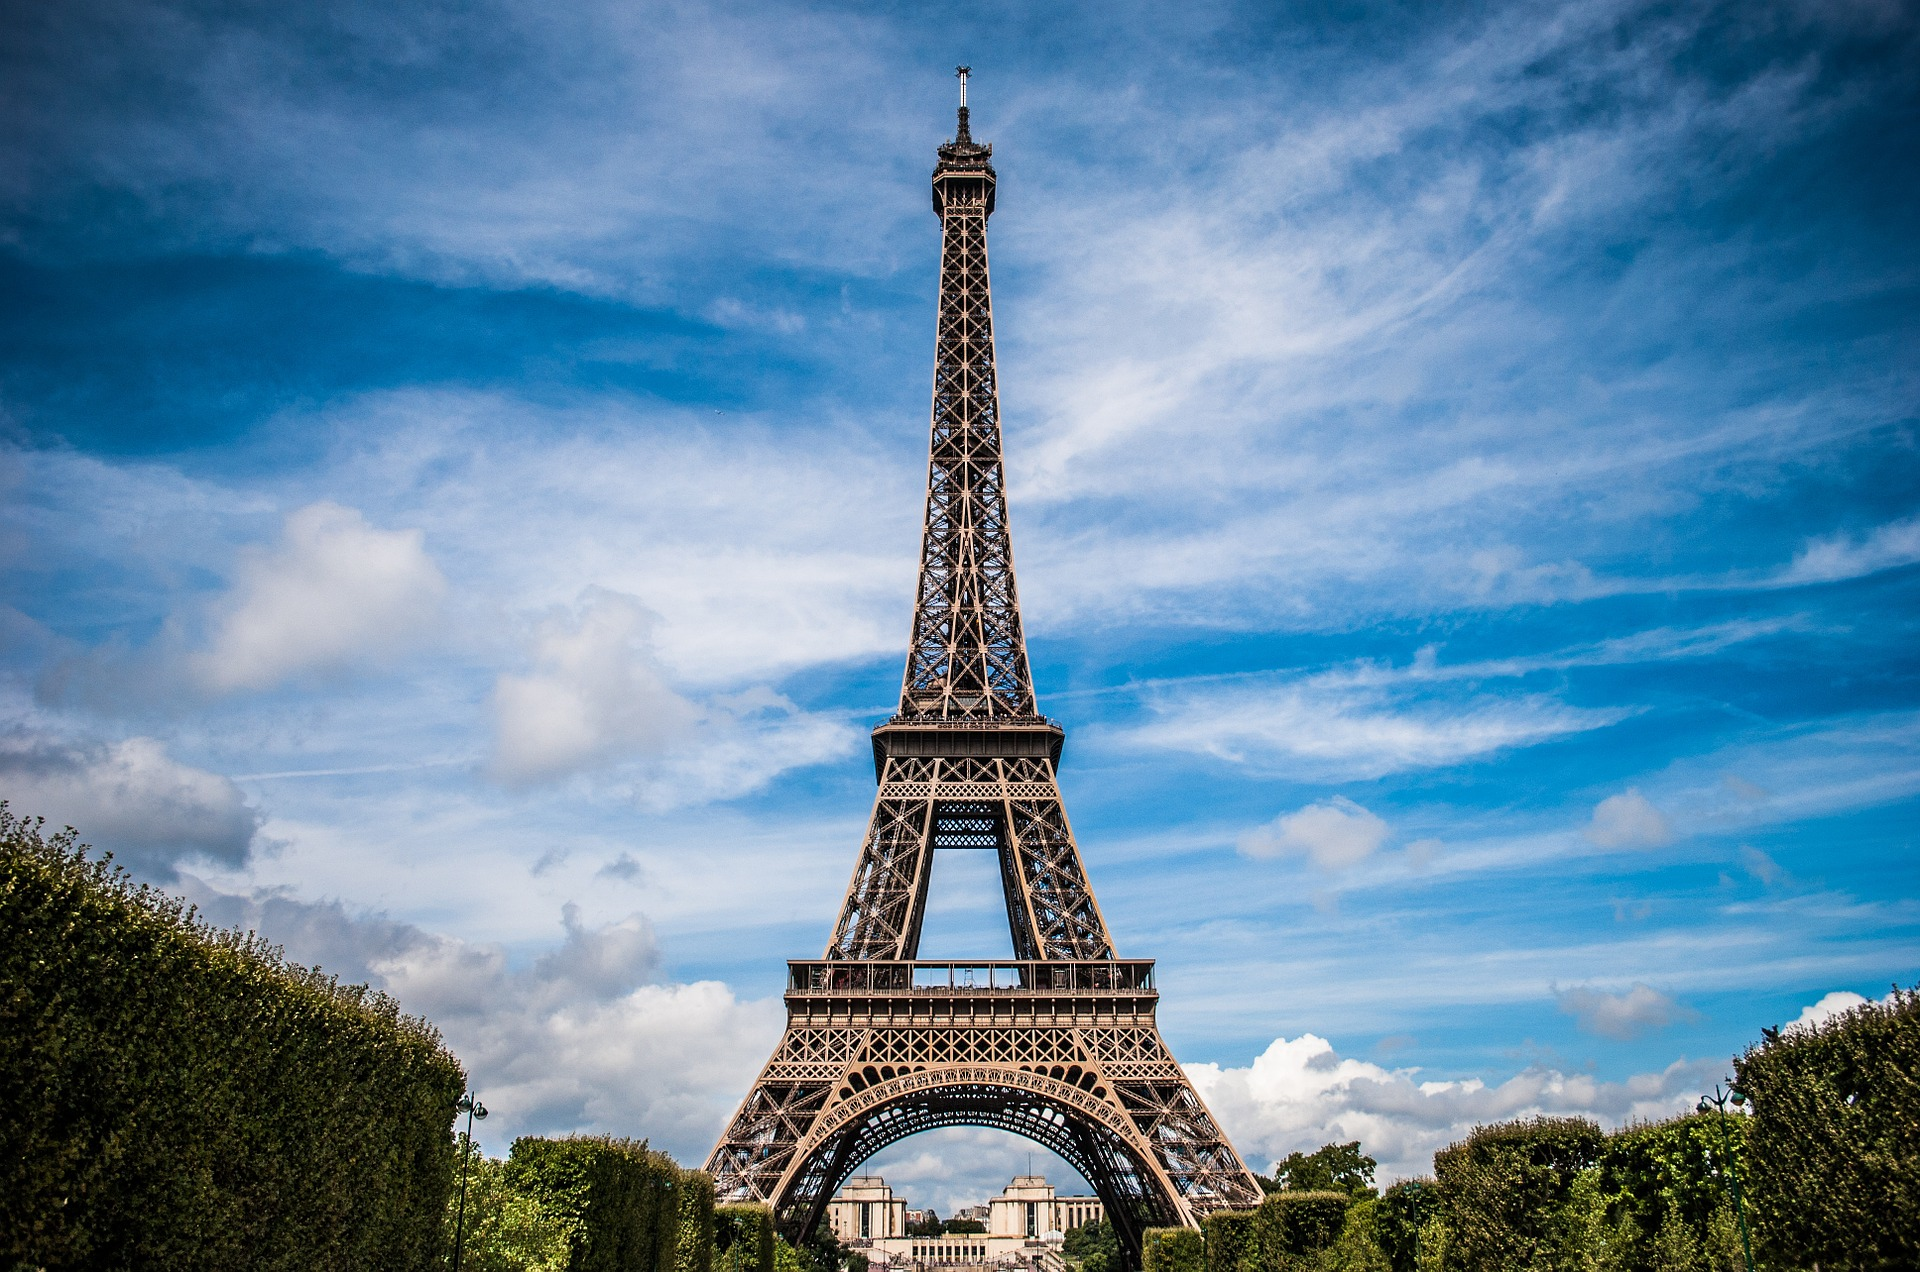 eiffel-tower-975004_1920.jpg